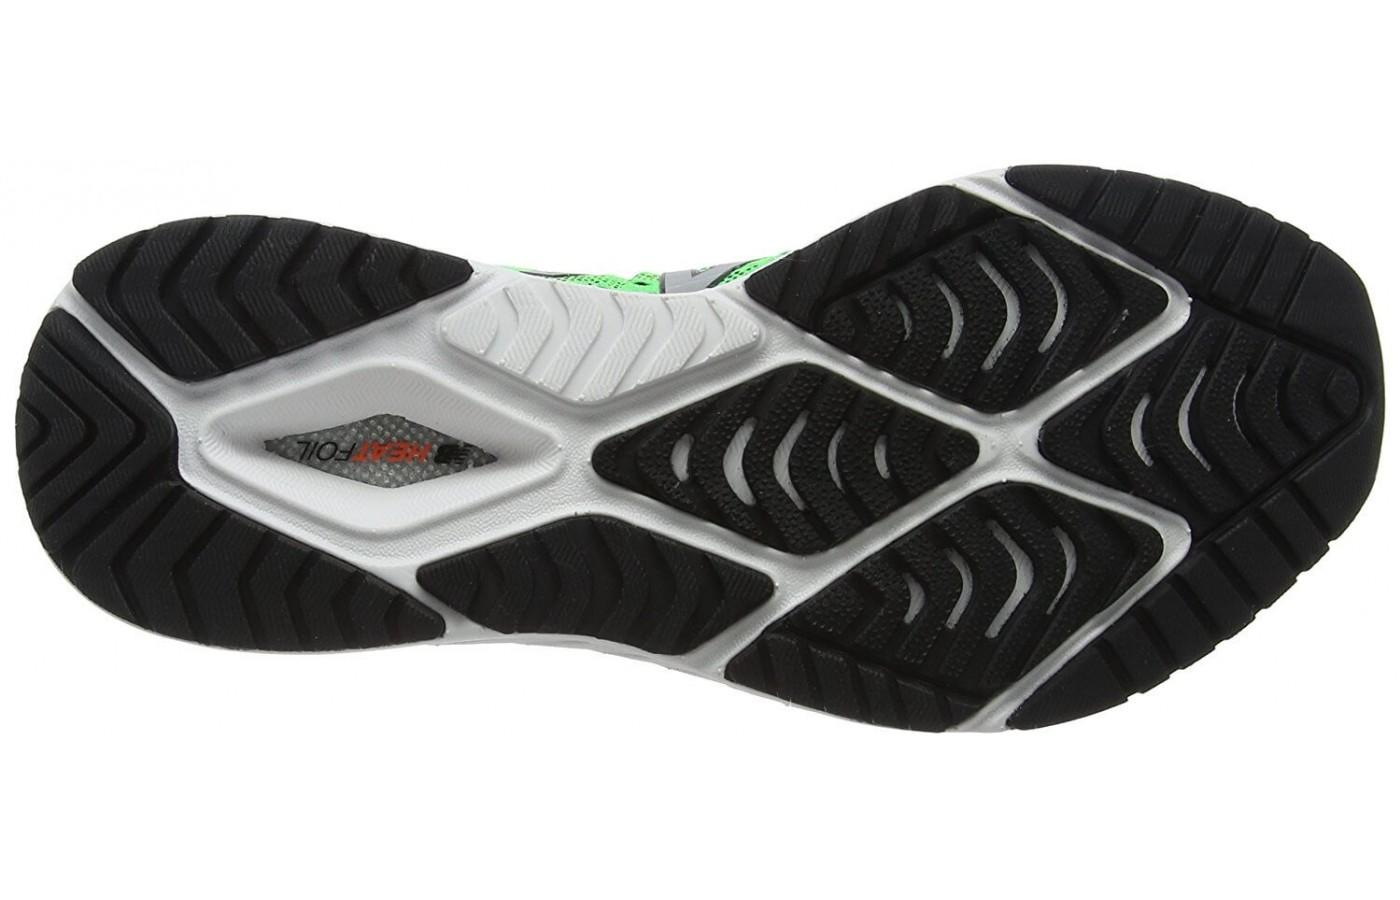 The outsole provides durability and split resistance.